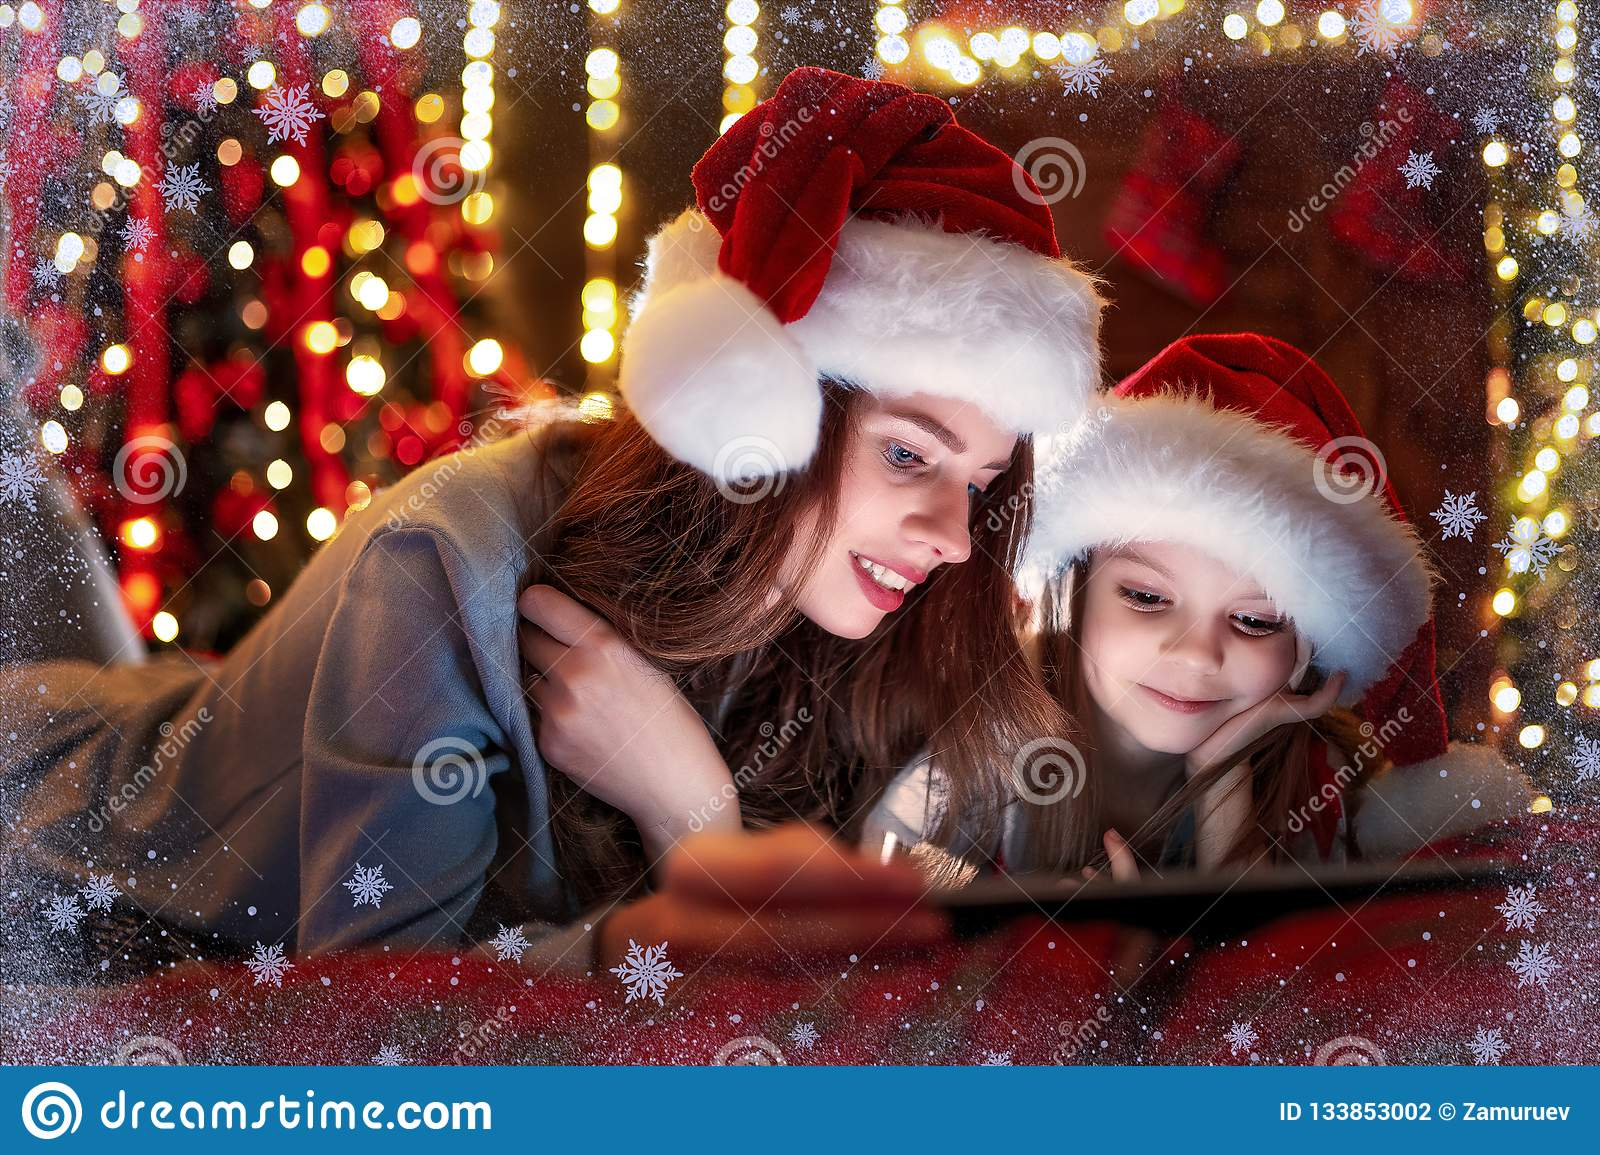 Smiling family mother and daughter in santas hats and pajamas watching funny video or choosing gifts on digital tablet